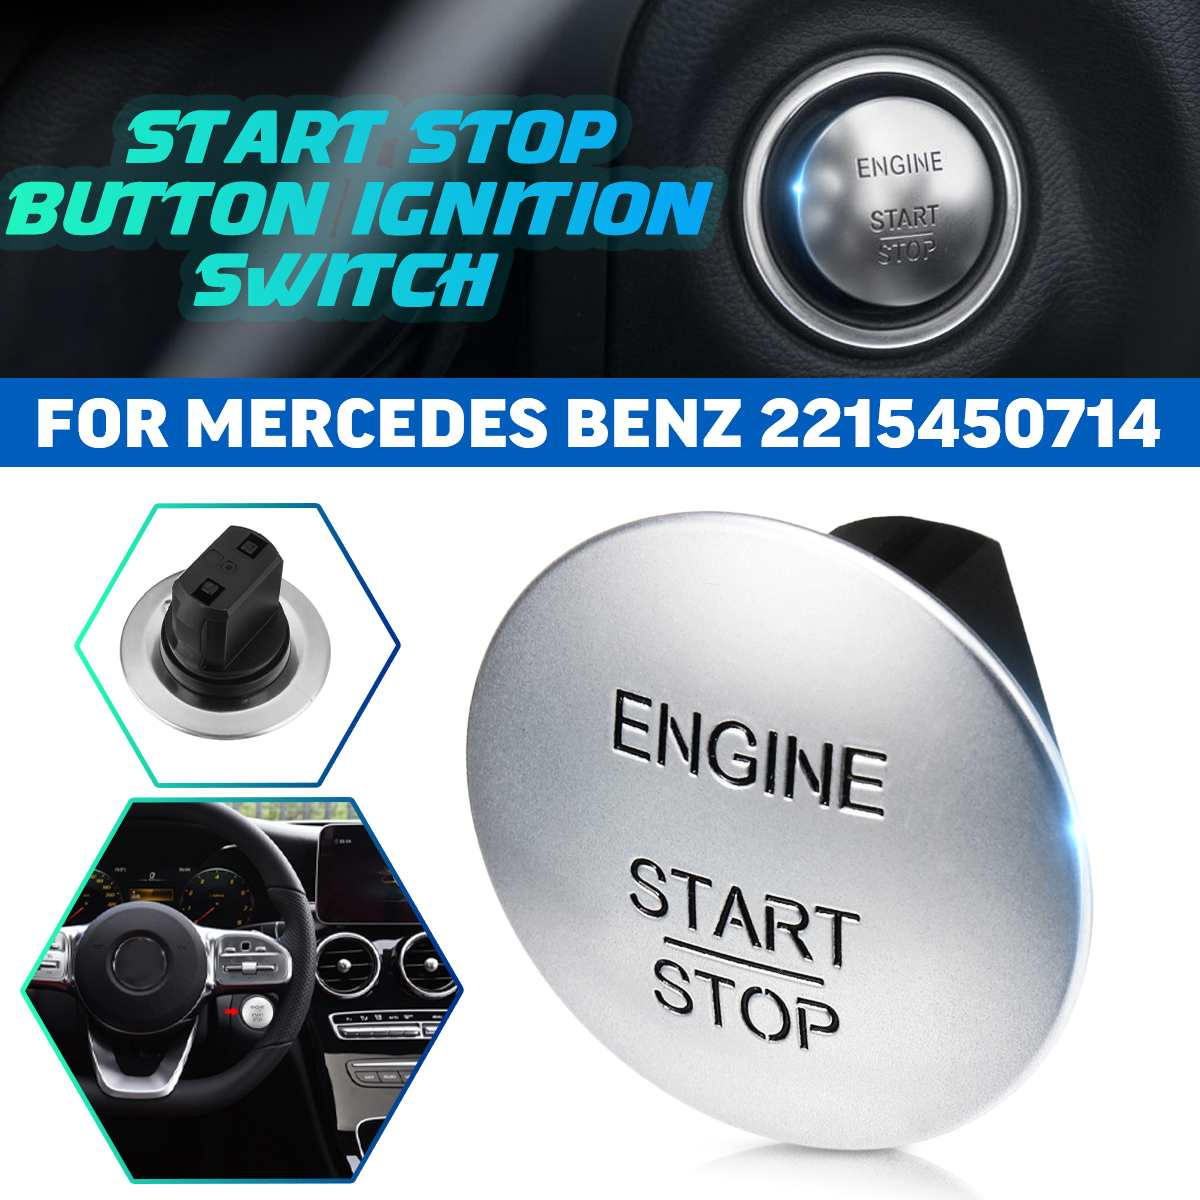 2215450714 Start Stop Push Button Ignition Switch Keyless For Mercedes-Benz CL550 E350 S550 GLK350 SLK200 CLS350 SLK350